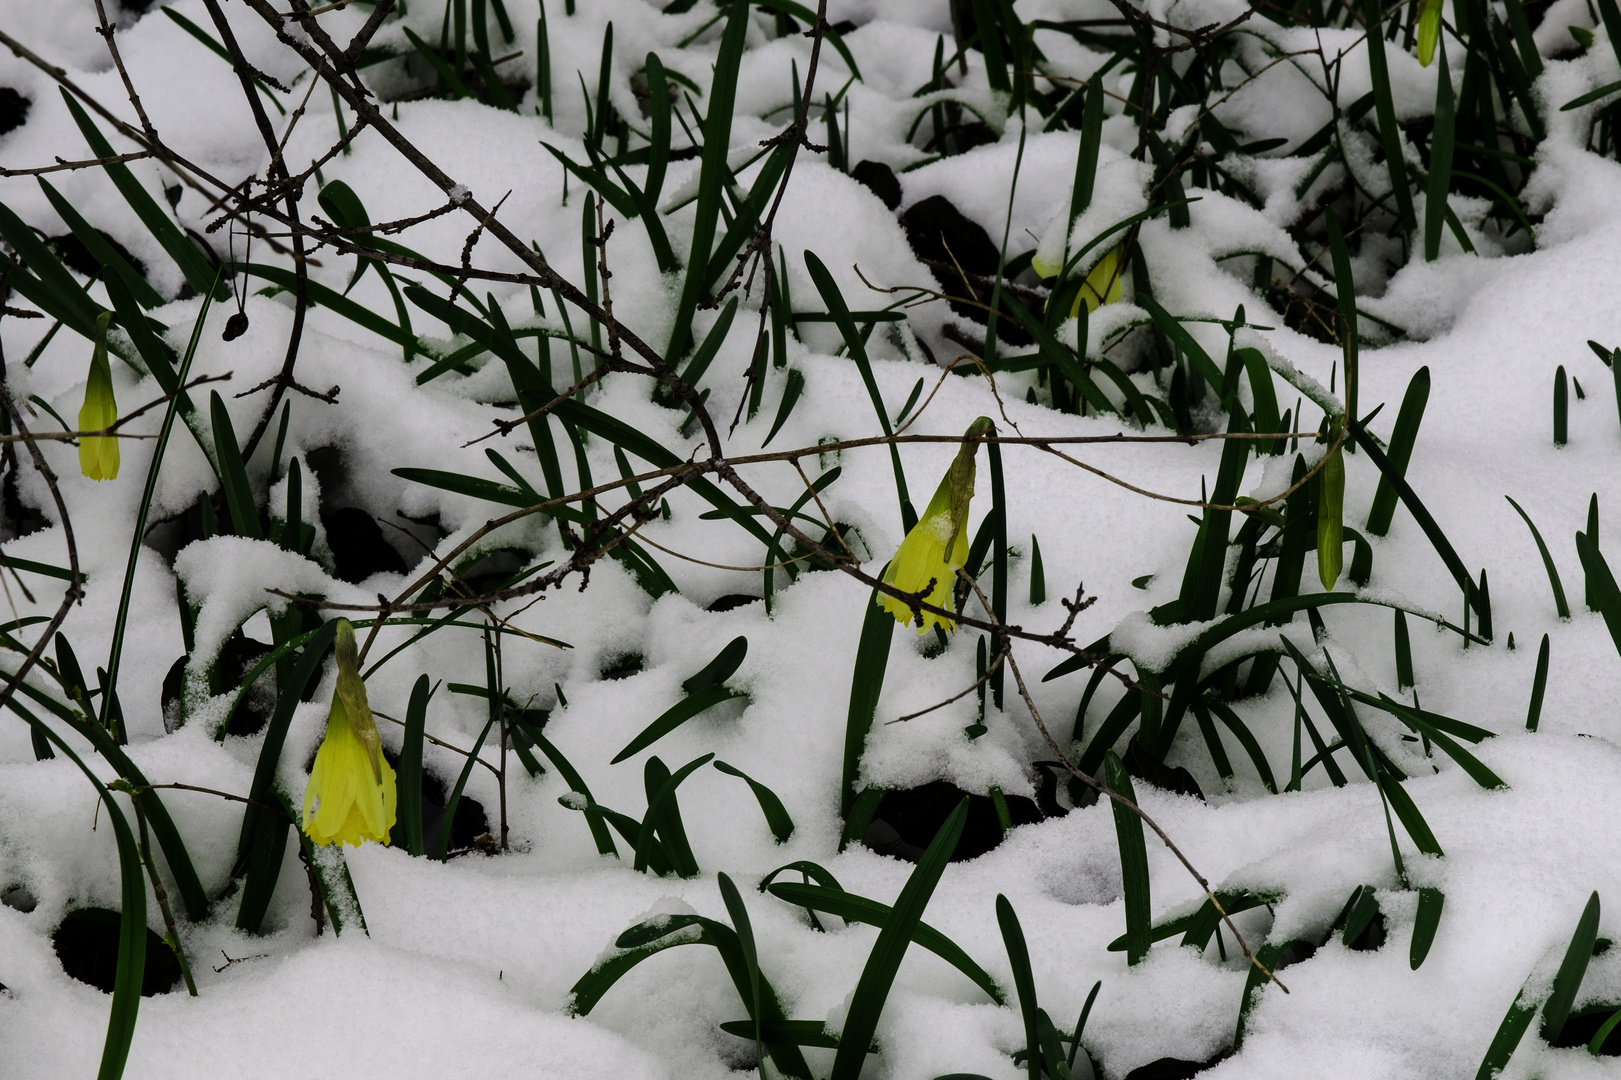 Narcissus pseudonarcissus im Winter